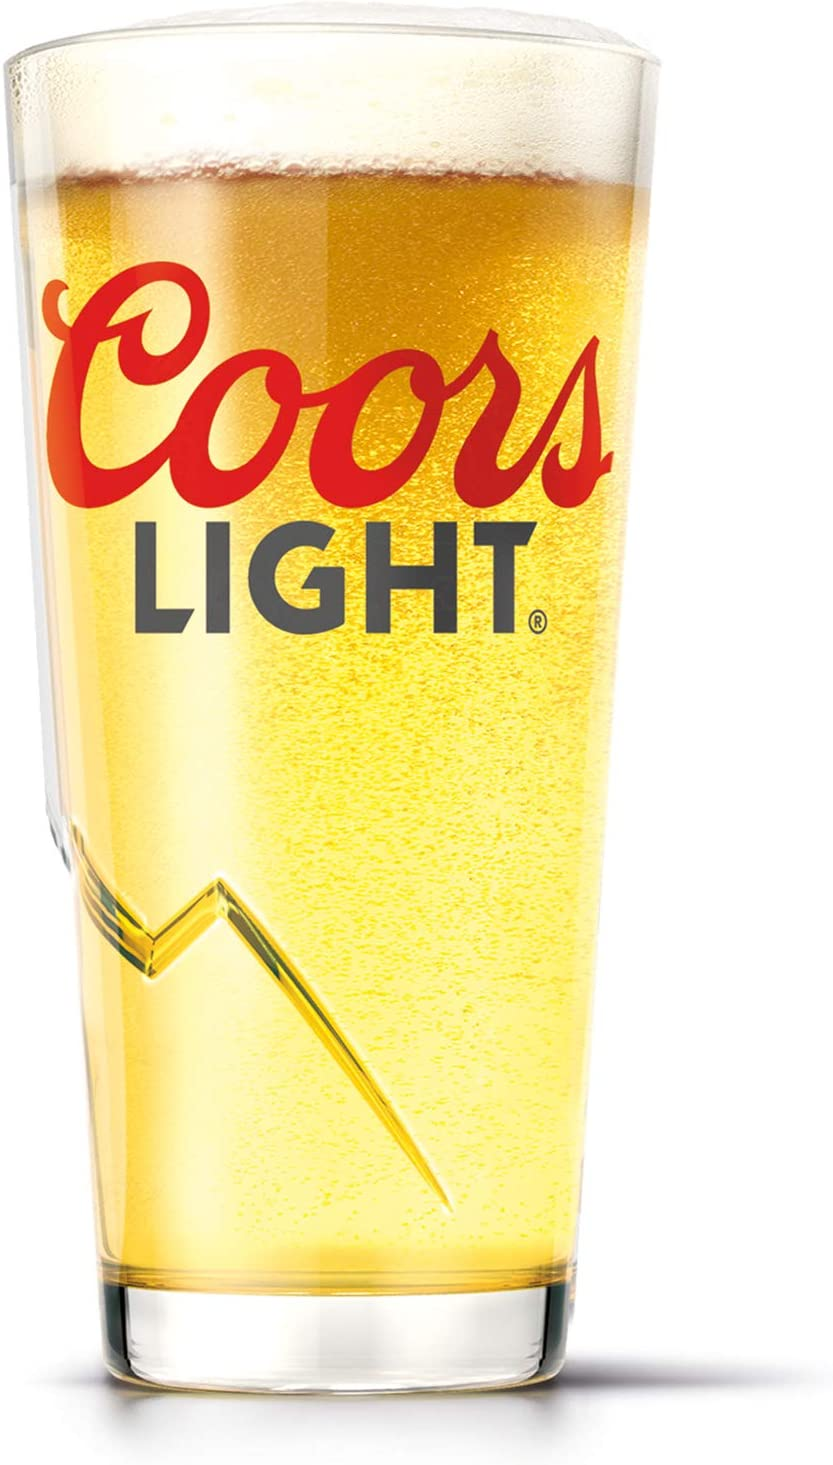 Personalised Branded 1 Pint Coors Light Beer Mountain Glass Engraved